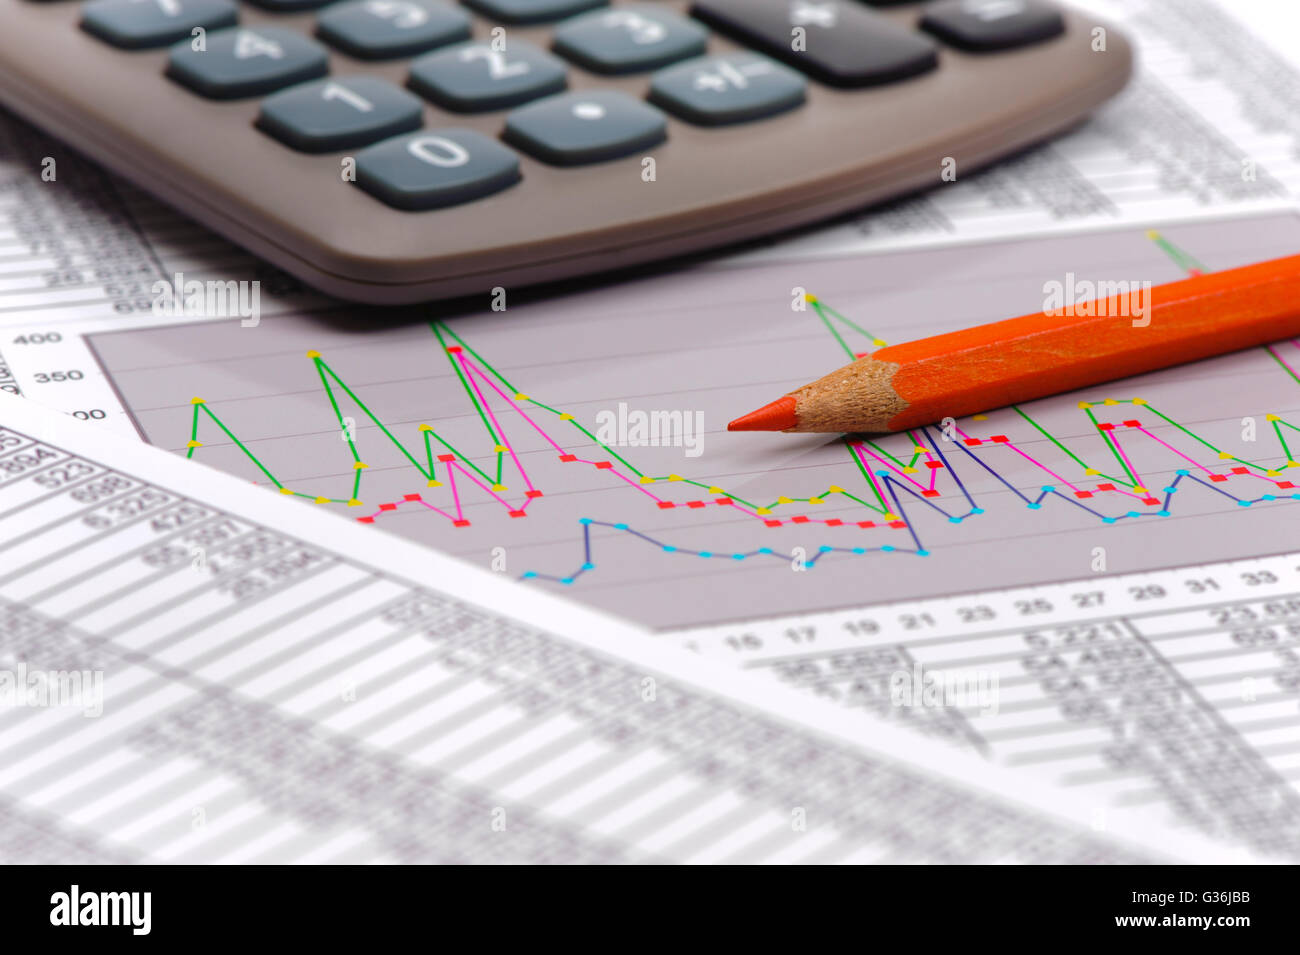 chart of financial budget calculation - Stock Image